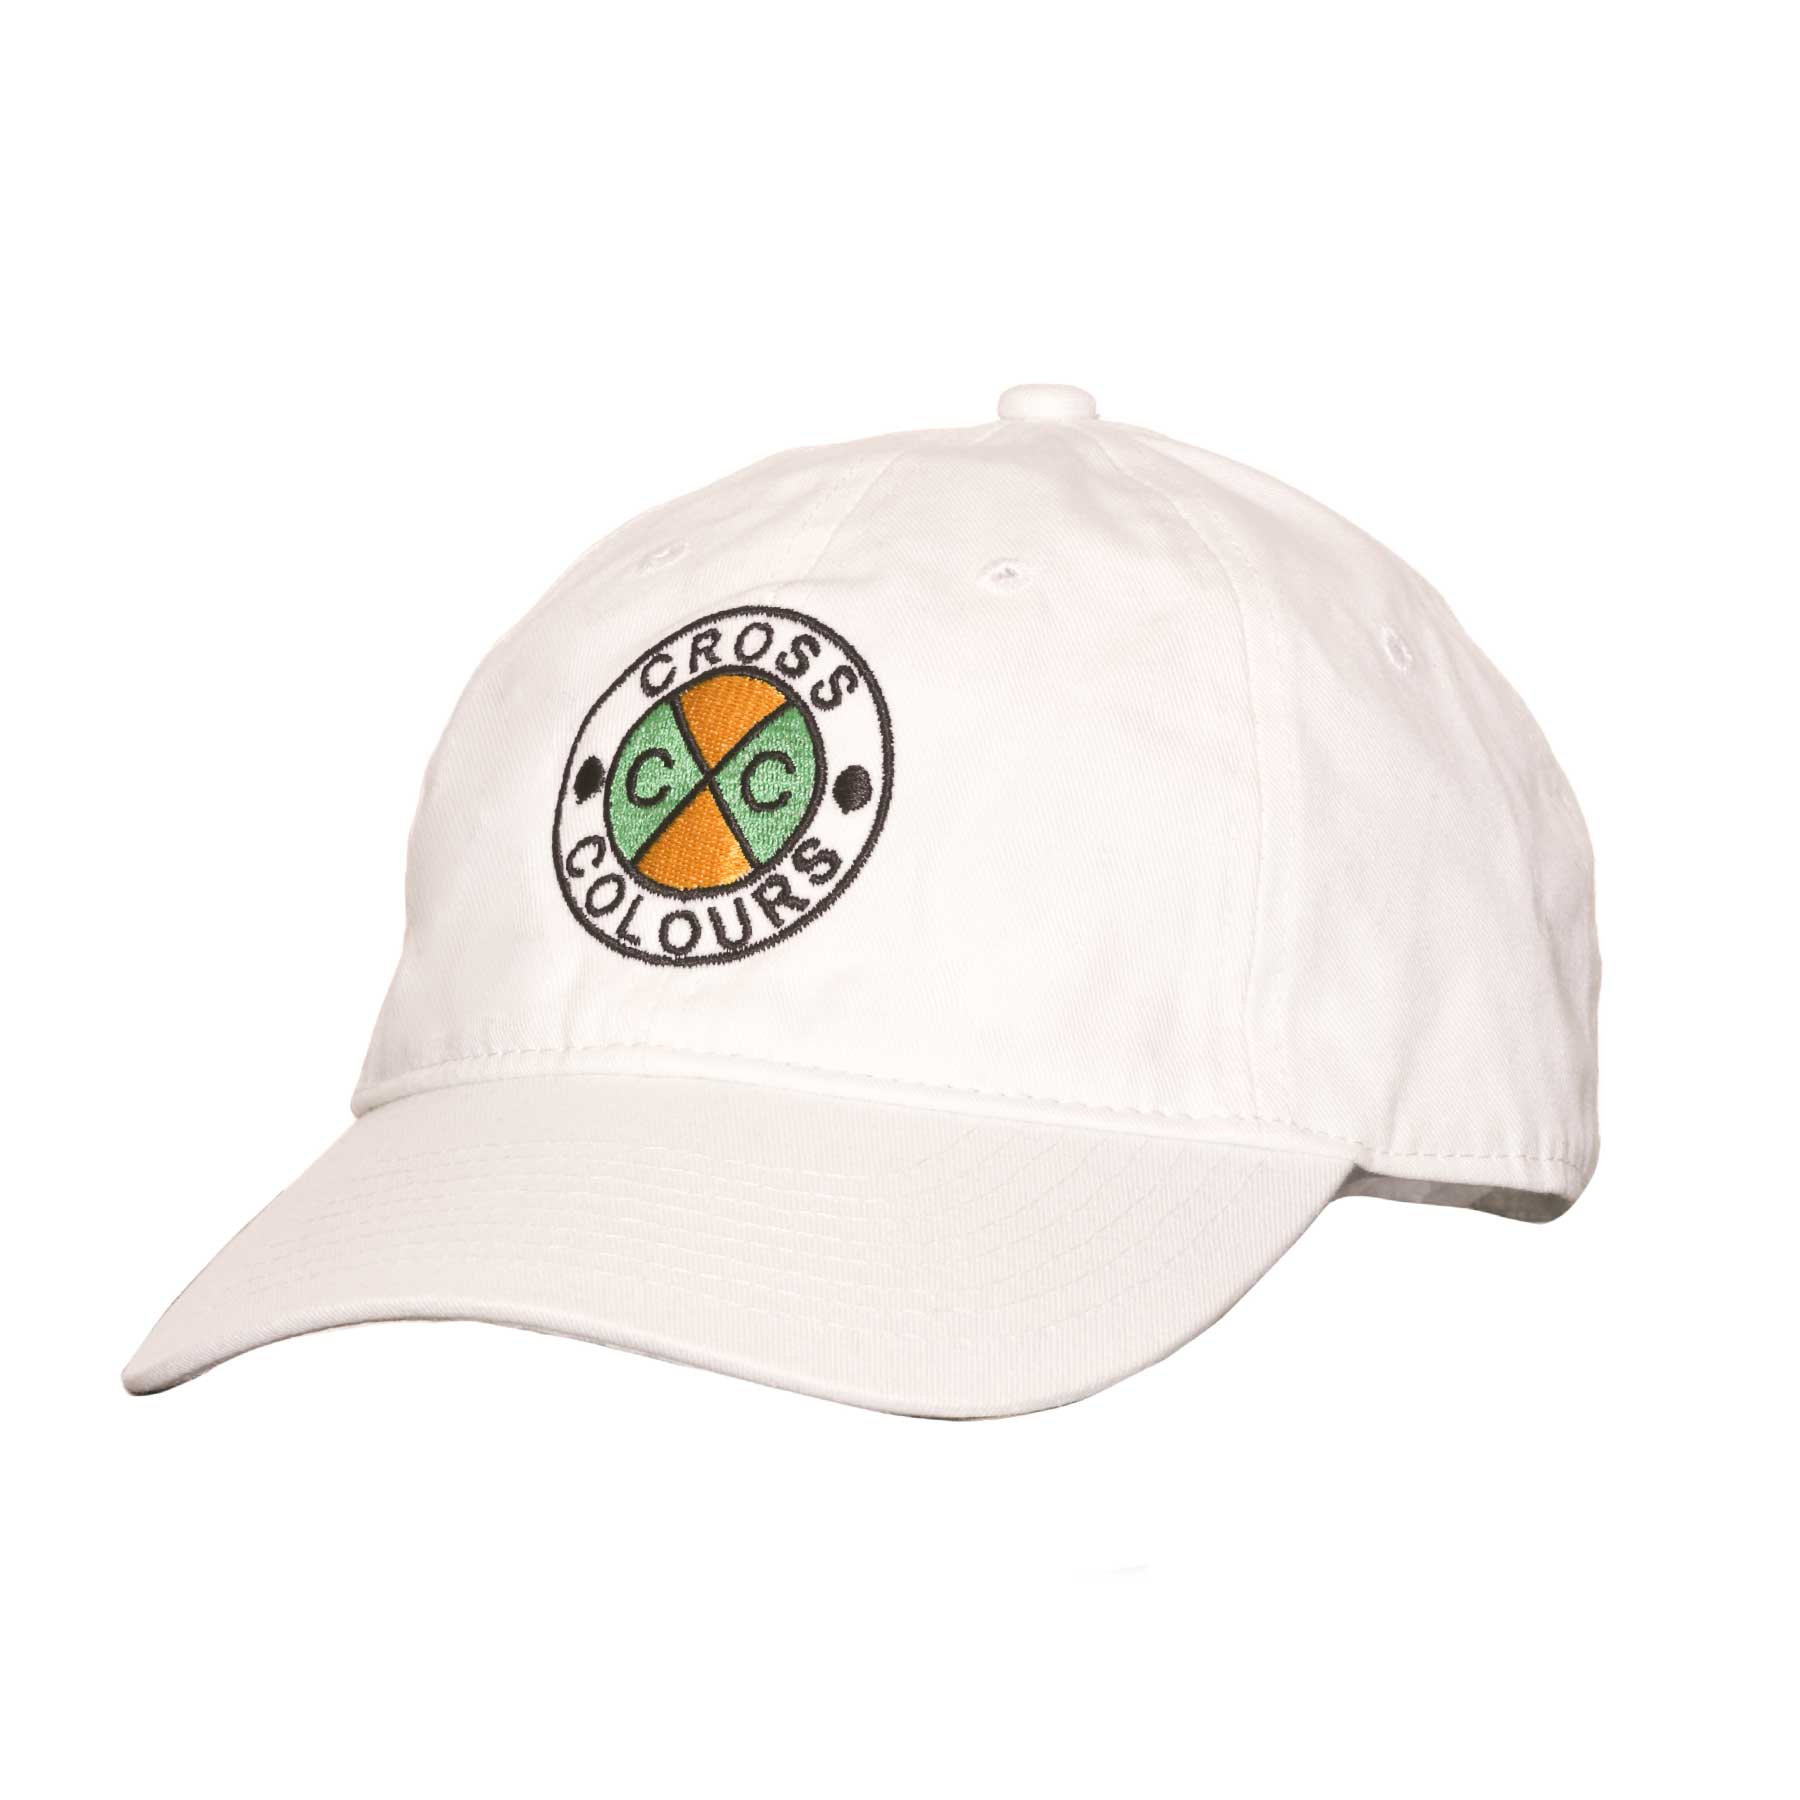 Cross Colours Classic Embroidered Dad Hat - White